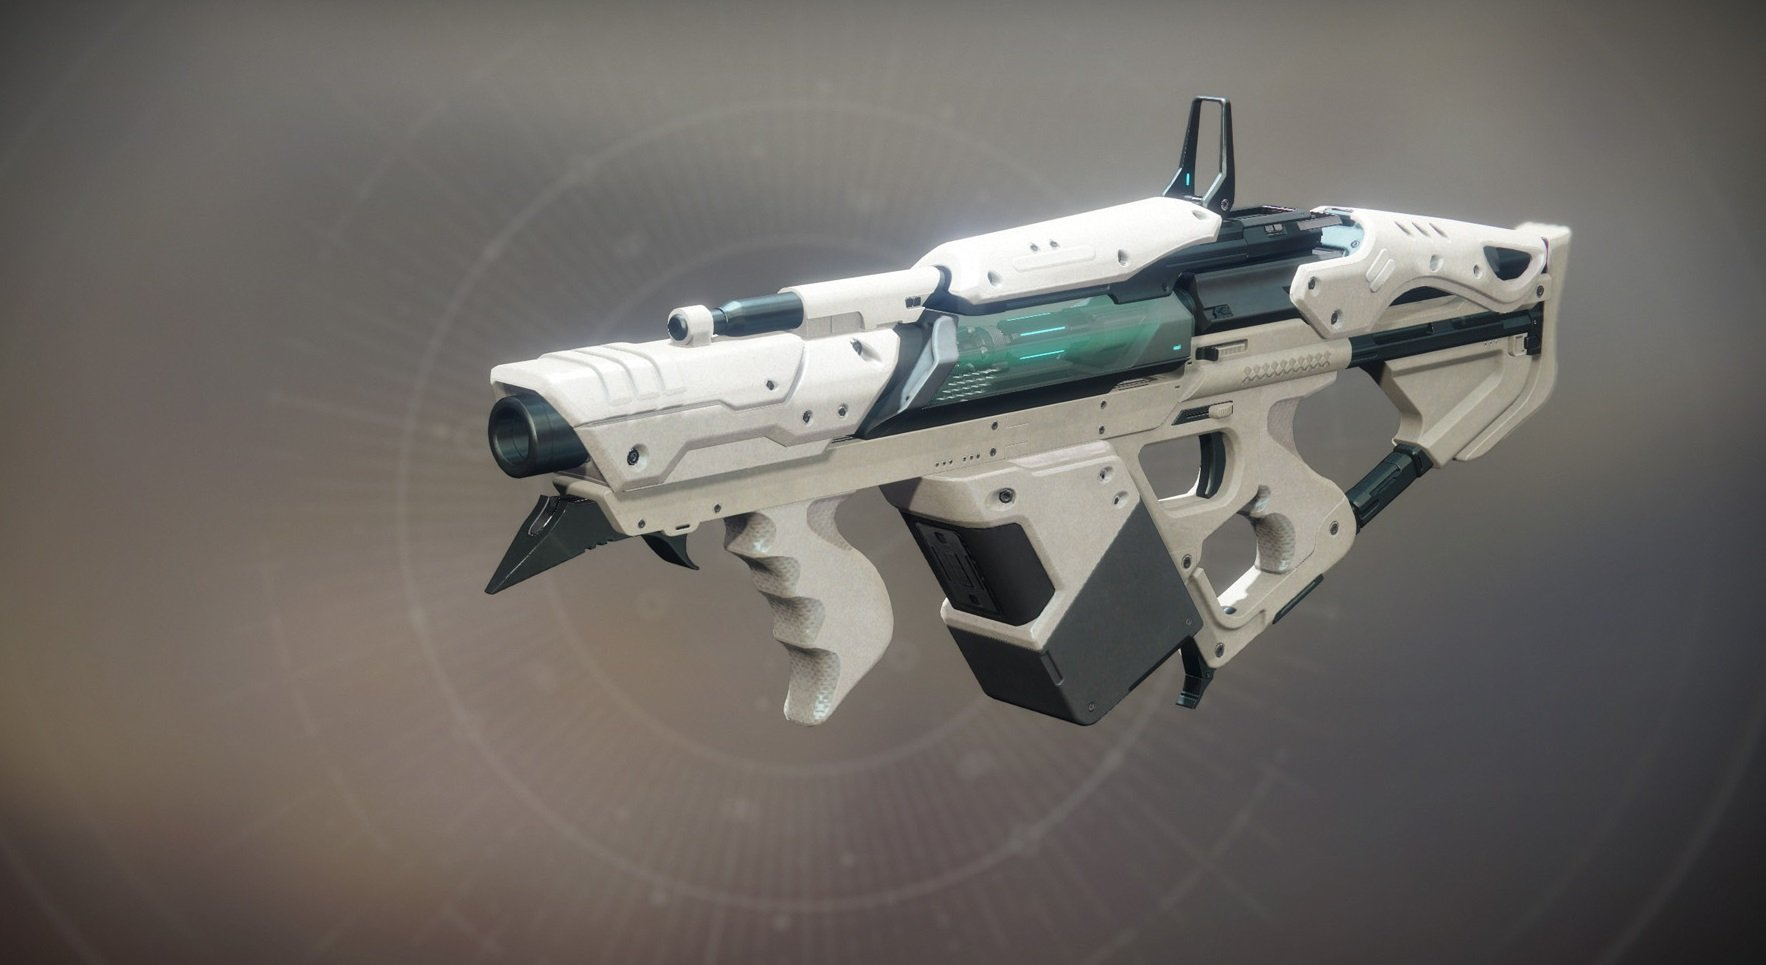 What Xur is Selling in Destiny 2 - August 9, 2019